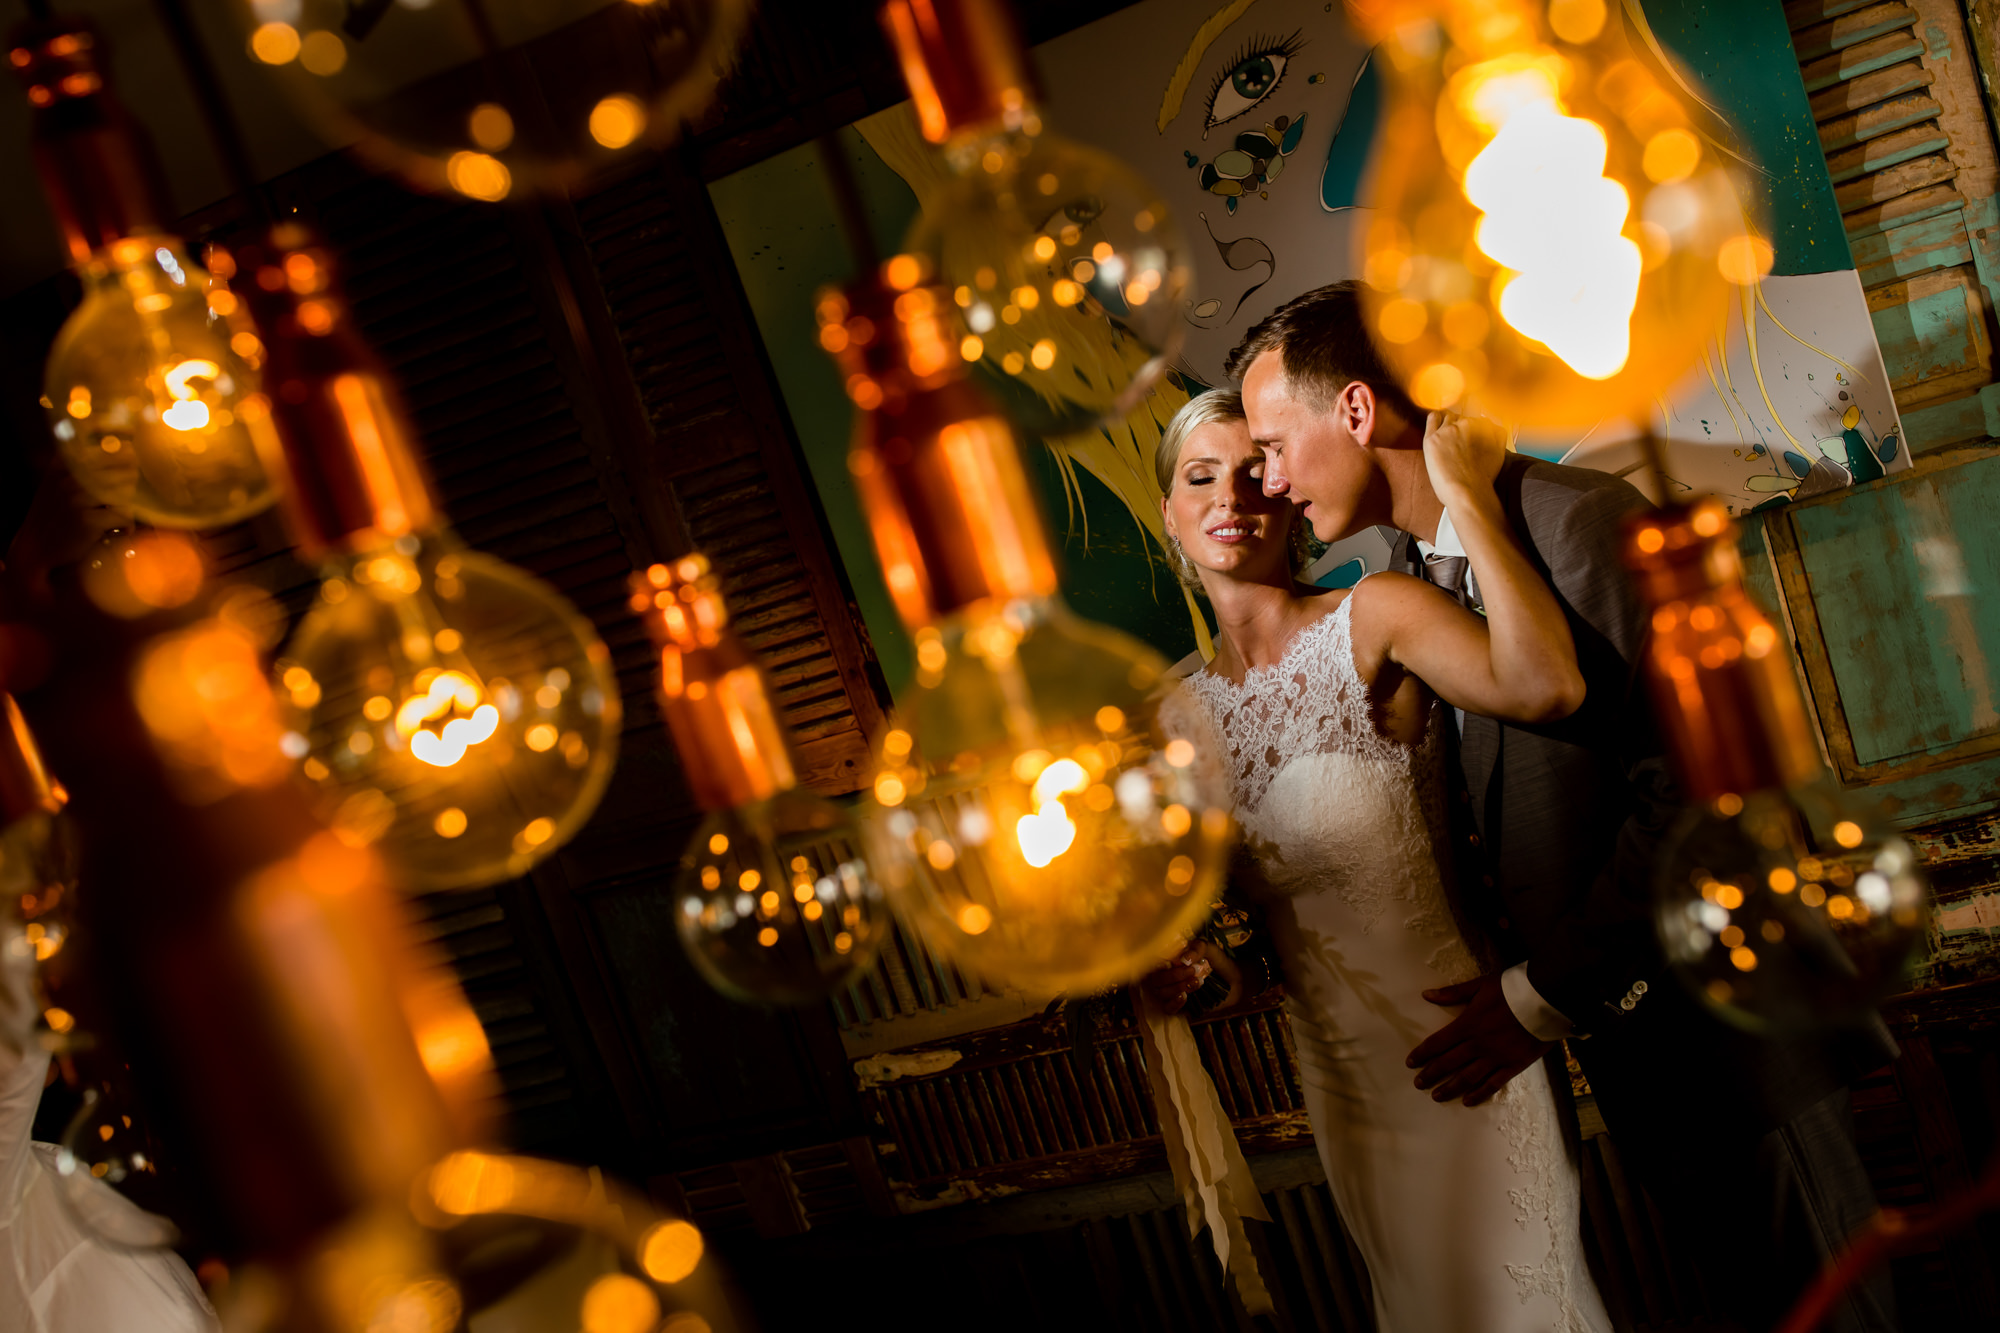 Bride and groom portrait framed by tungsten light bulbs, by Eppel Fotographie